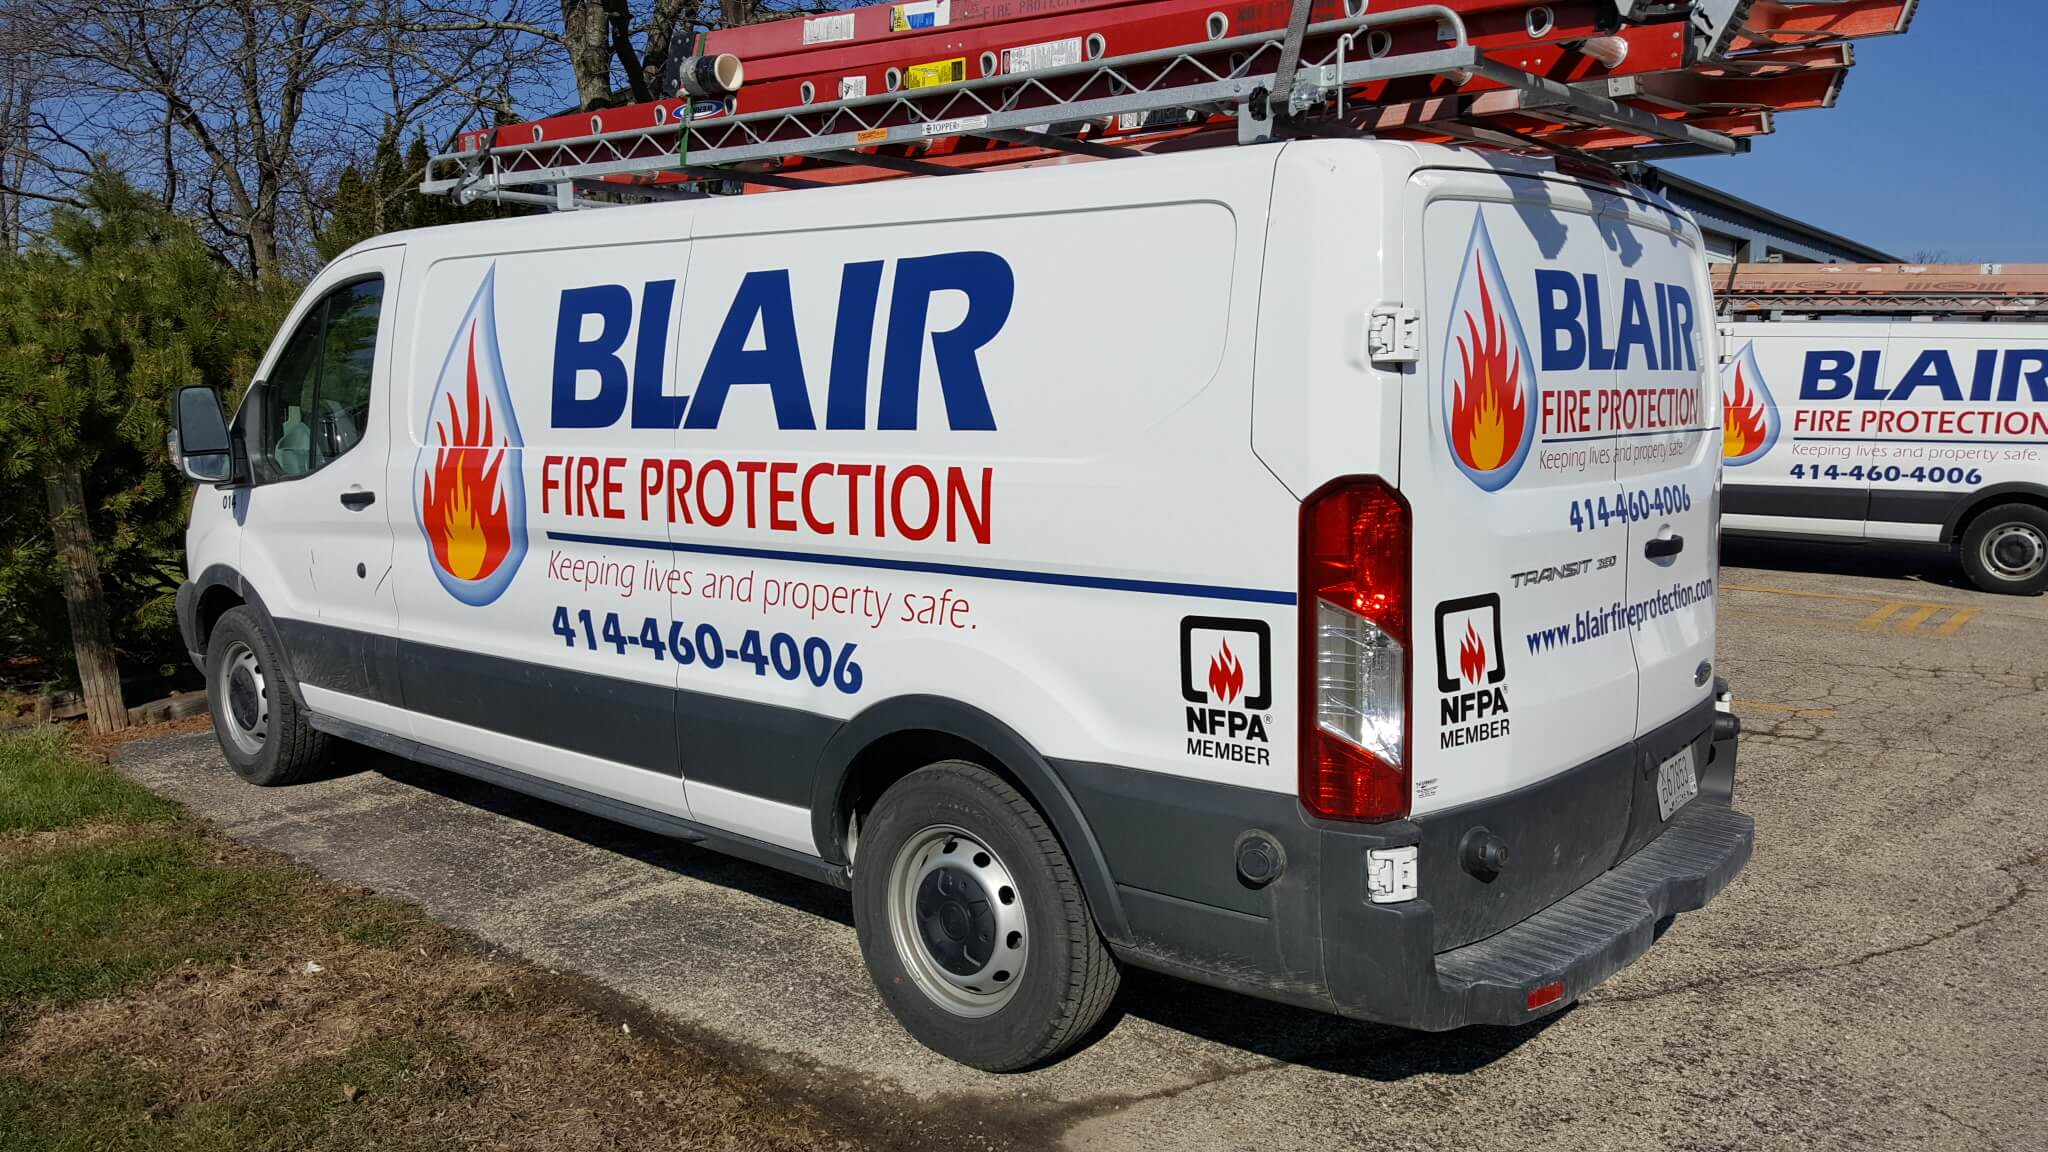 Blair fire protection contractor decals